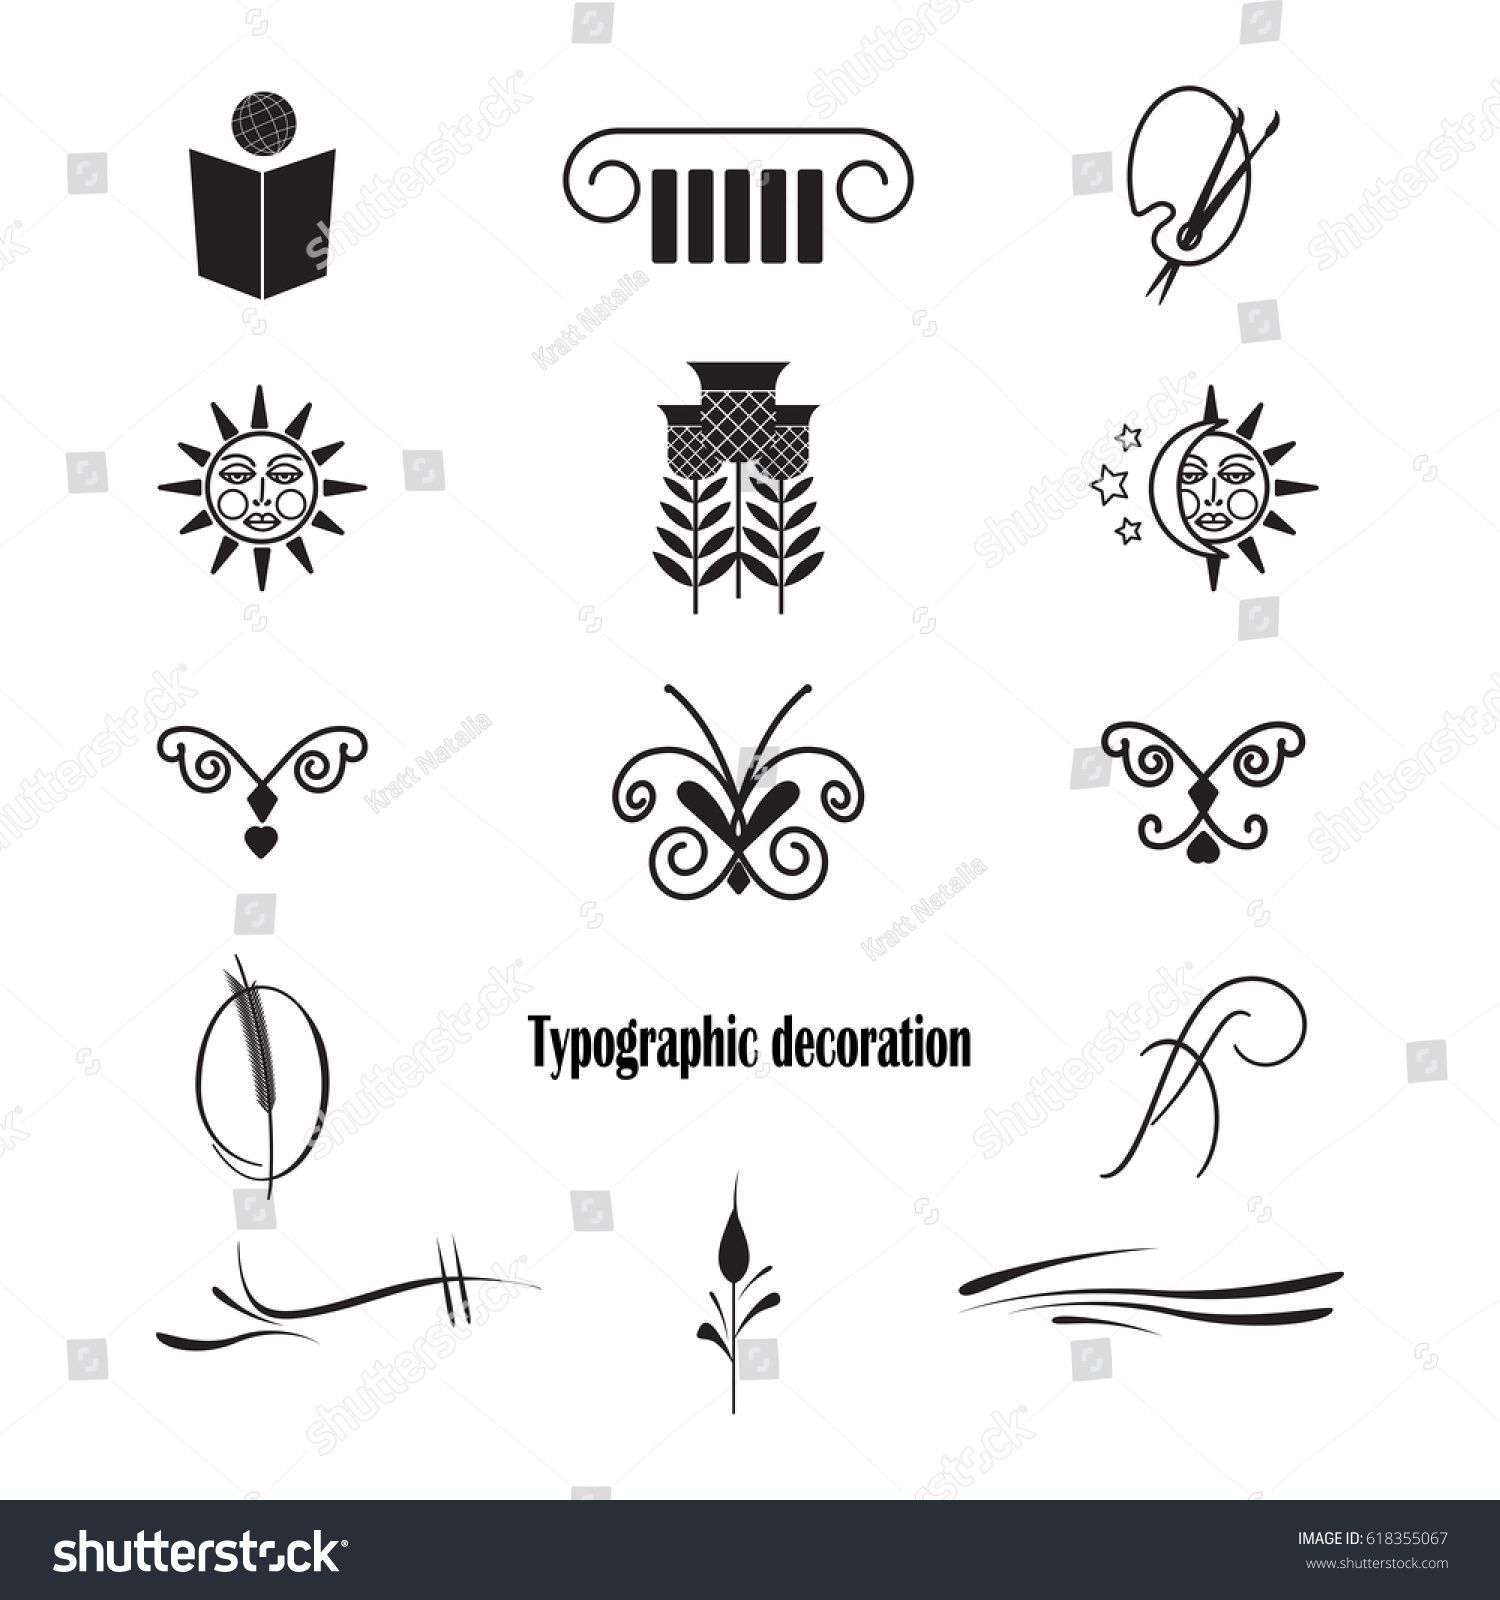 Typographic Decoration Made Vector Clean Minimalistic Stock Vector